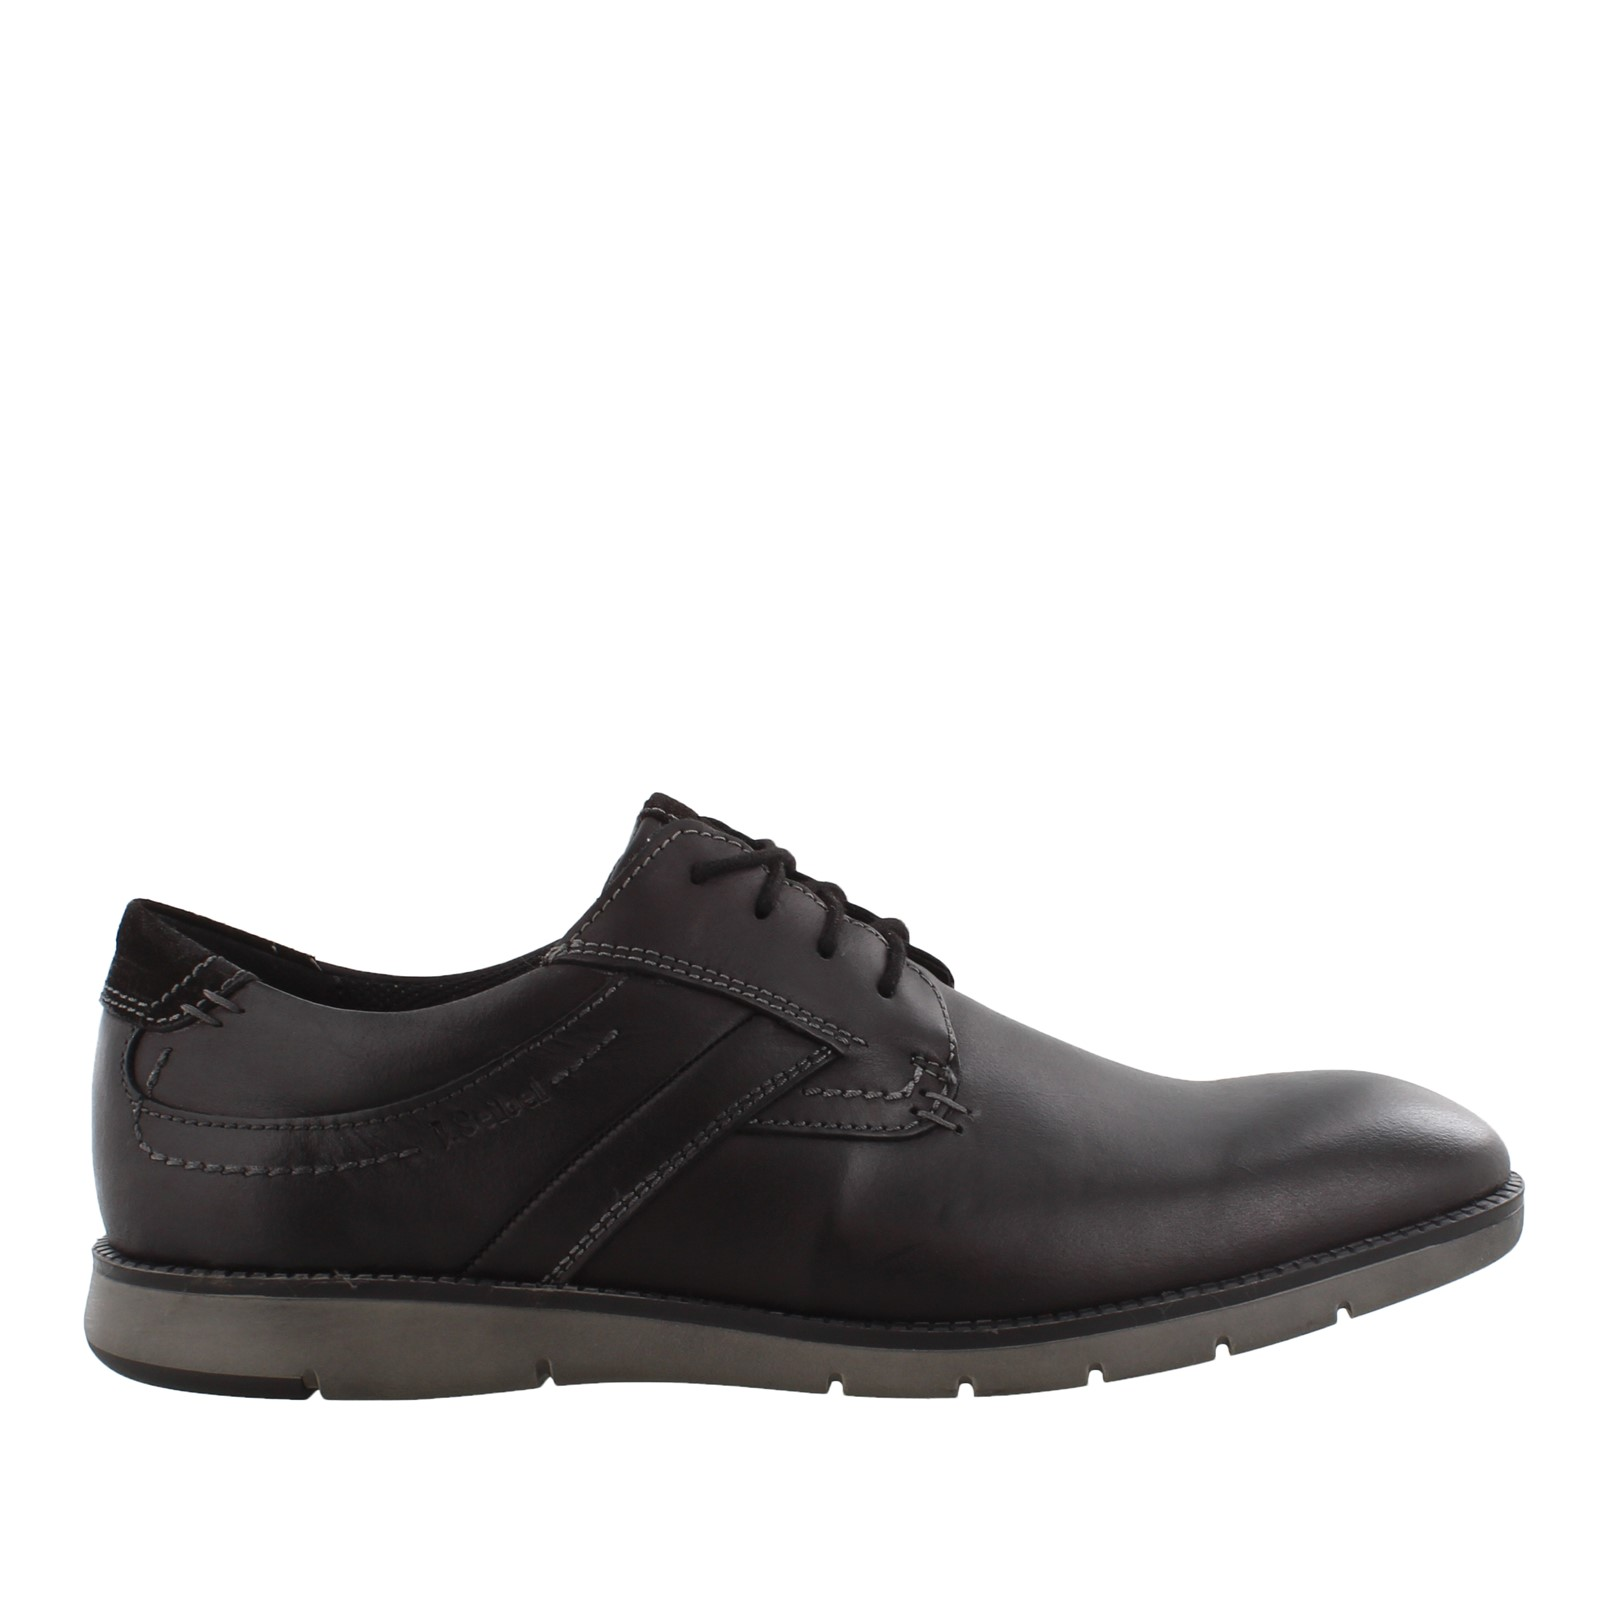 Men's Josef Seibel, Tyler 25 Lace Up Oxfords